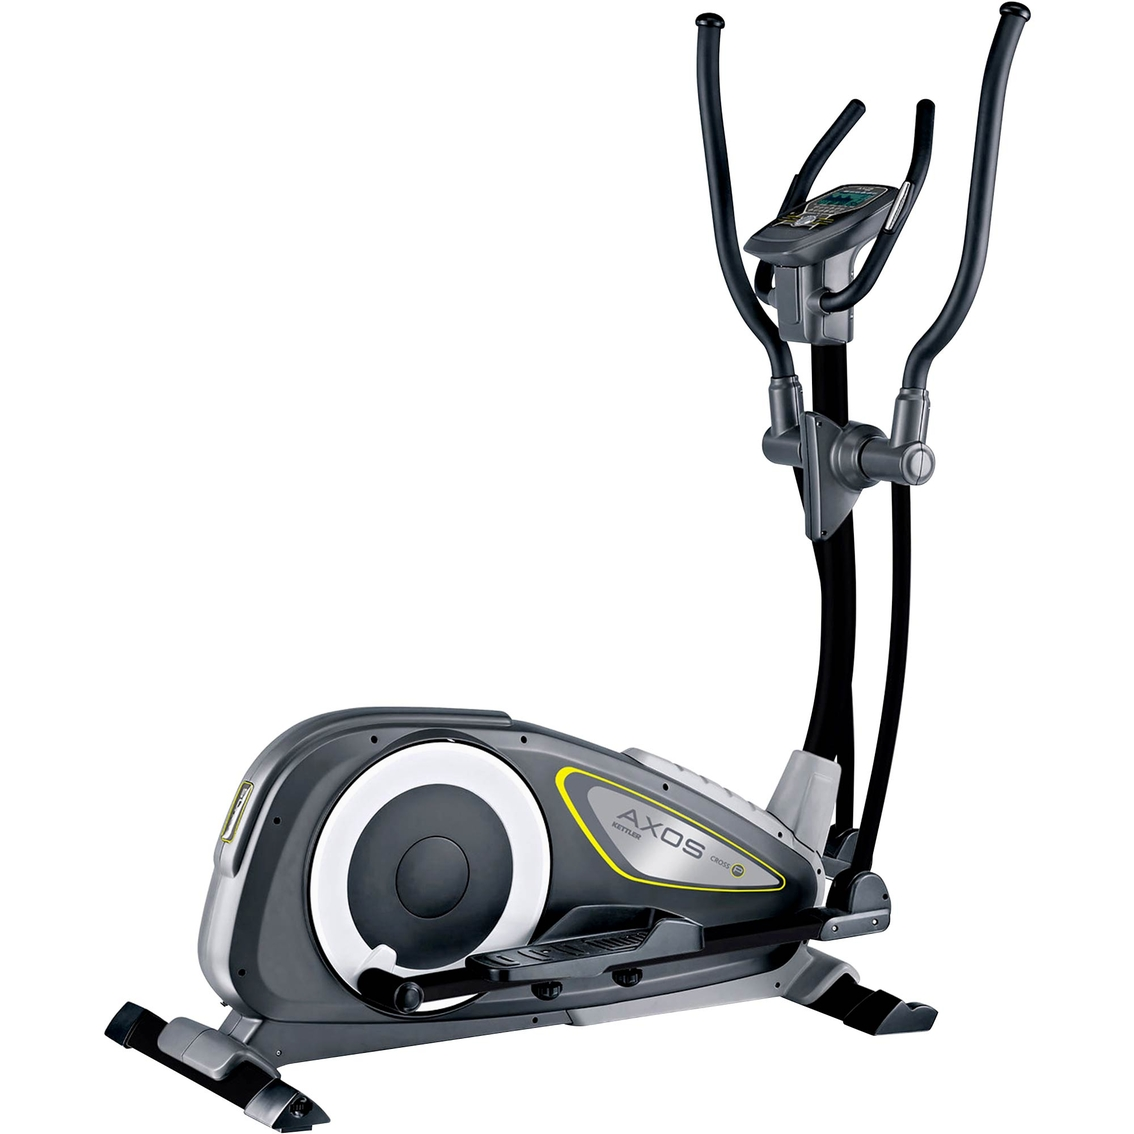 Kettler Fitness Kettler Axos Cross P Cross Trainer Cardio Equipment Sports